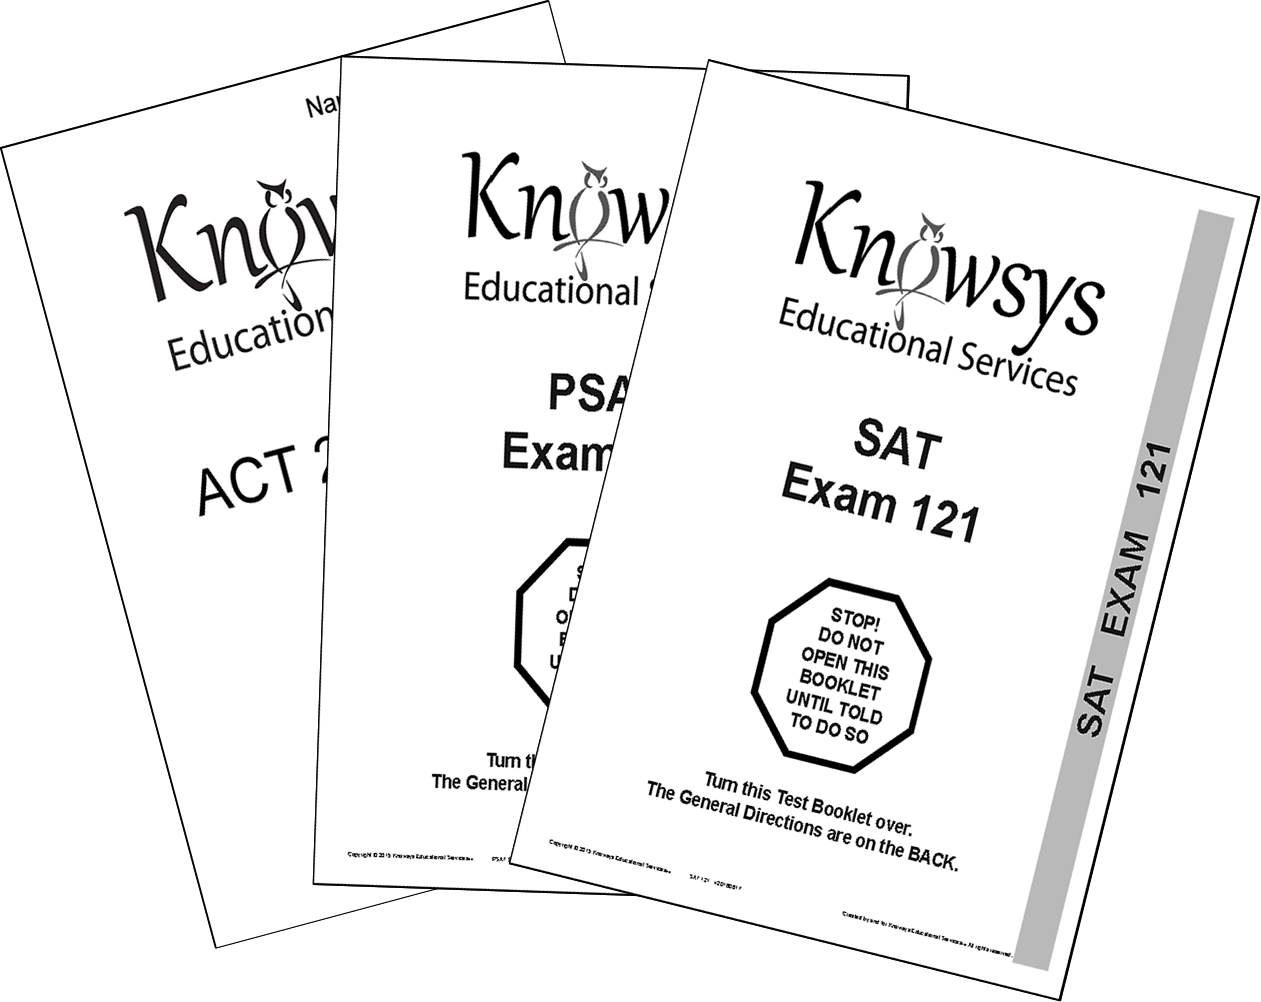 Practice Exams — Knowsys Educational Services